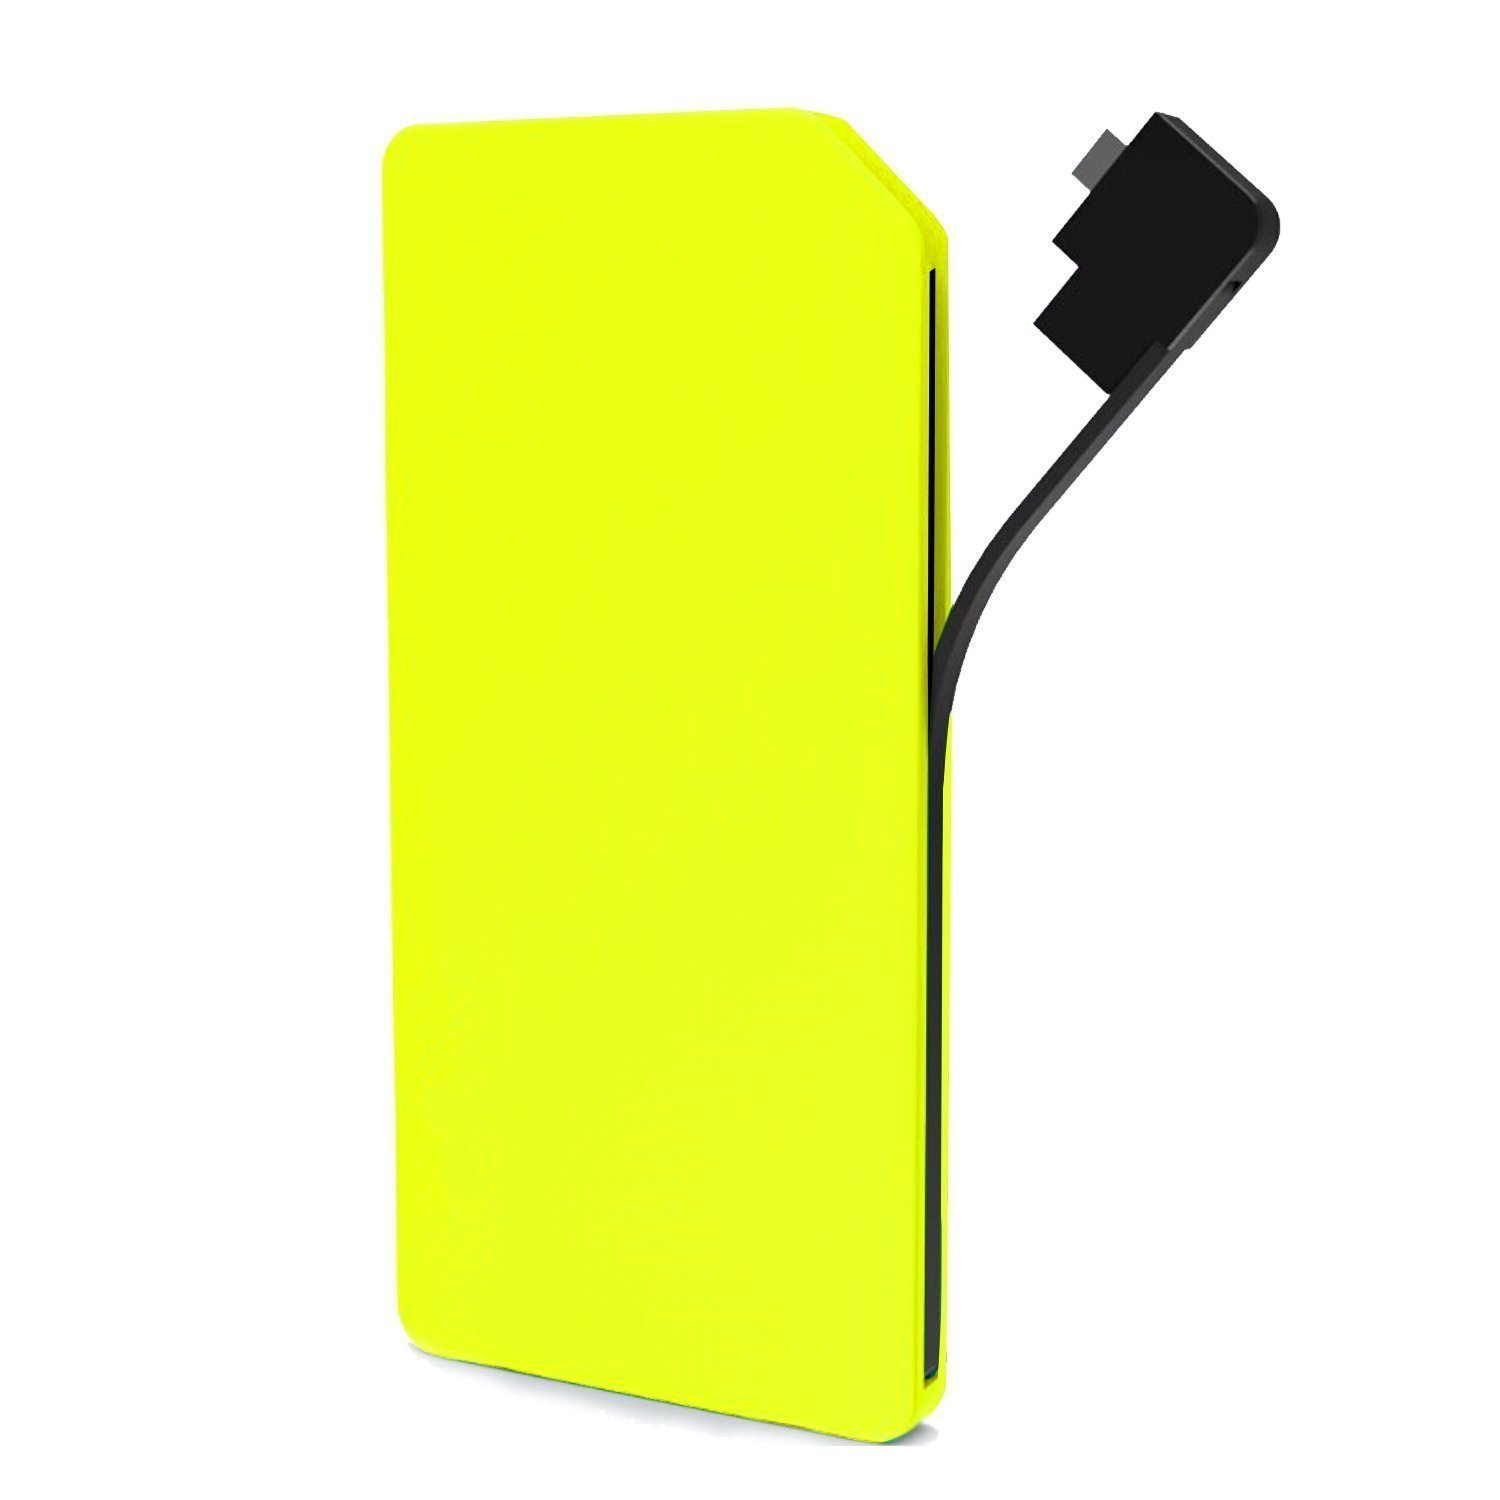 Slim Power Bank, JDB 10000mAh Portable USB Charger Dual Output External Battery Charger Mobile Battery Pack Backup Built-in Micro USB Cable for iPhone, Android Cell Phone,Tablet and more.